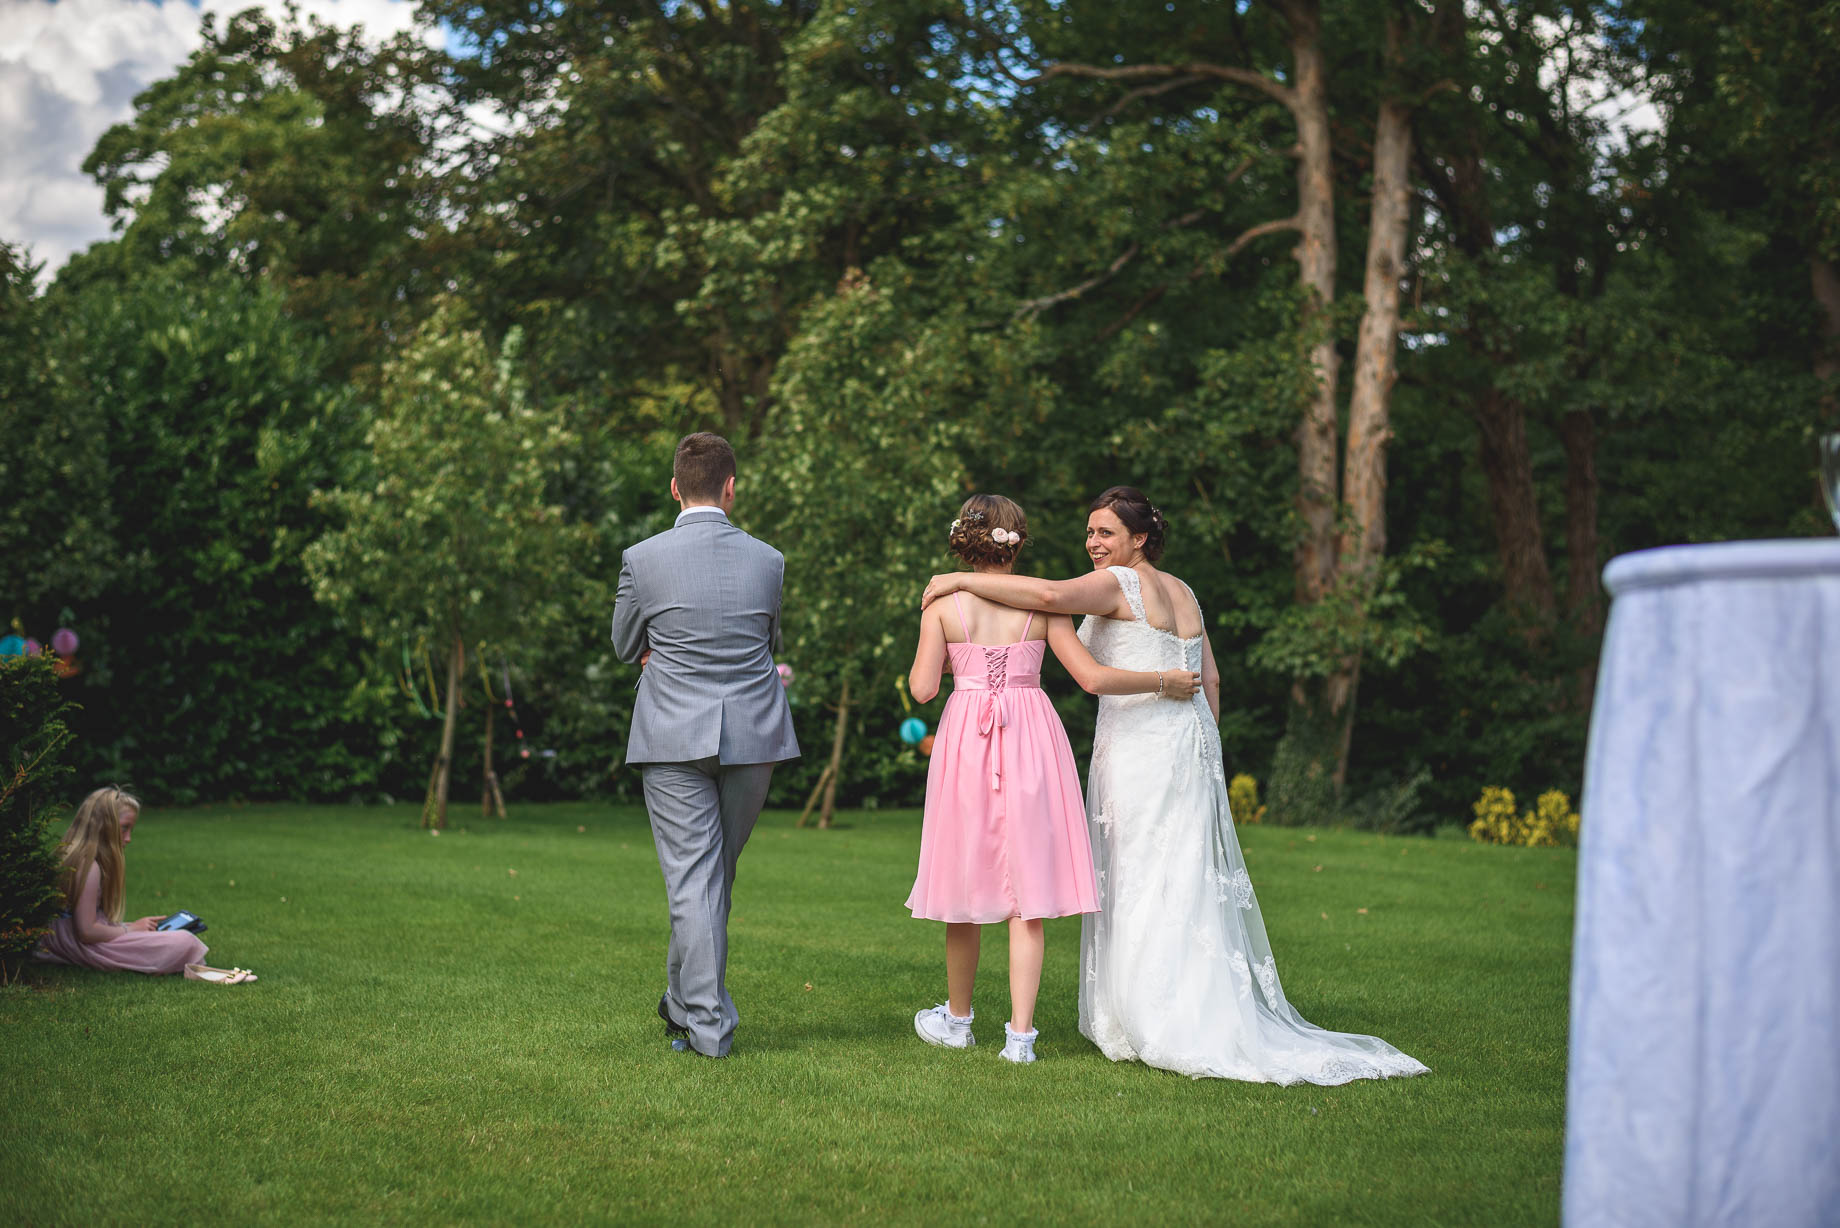 Luton Hoo wedding photography by Guy Collier Photography - Lauren and Gem (107 of 178)